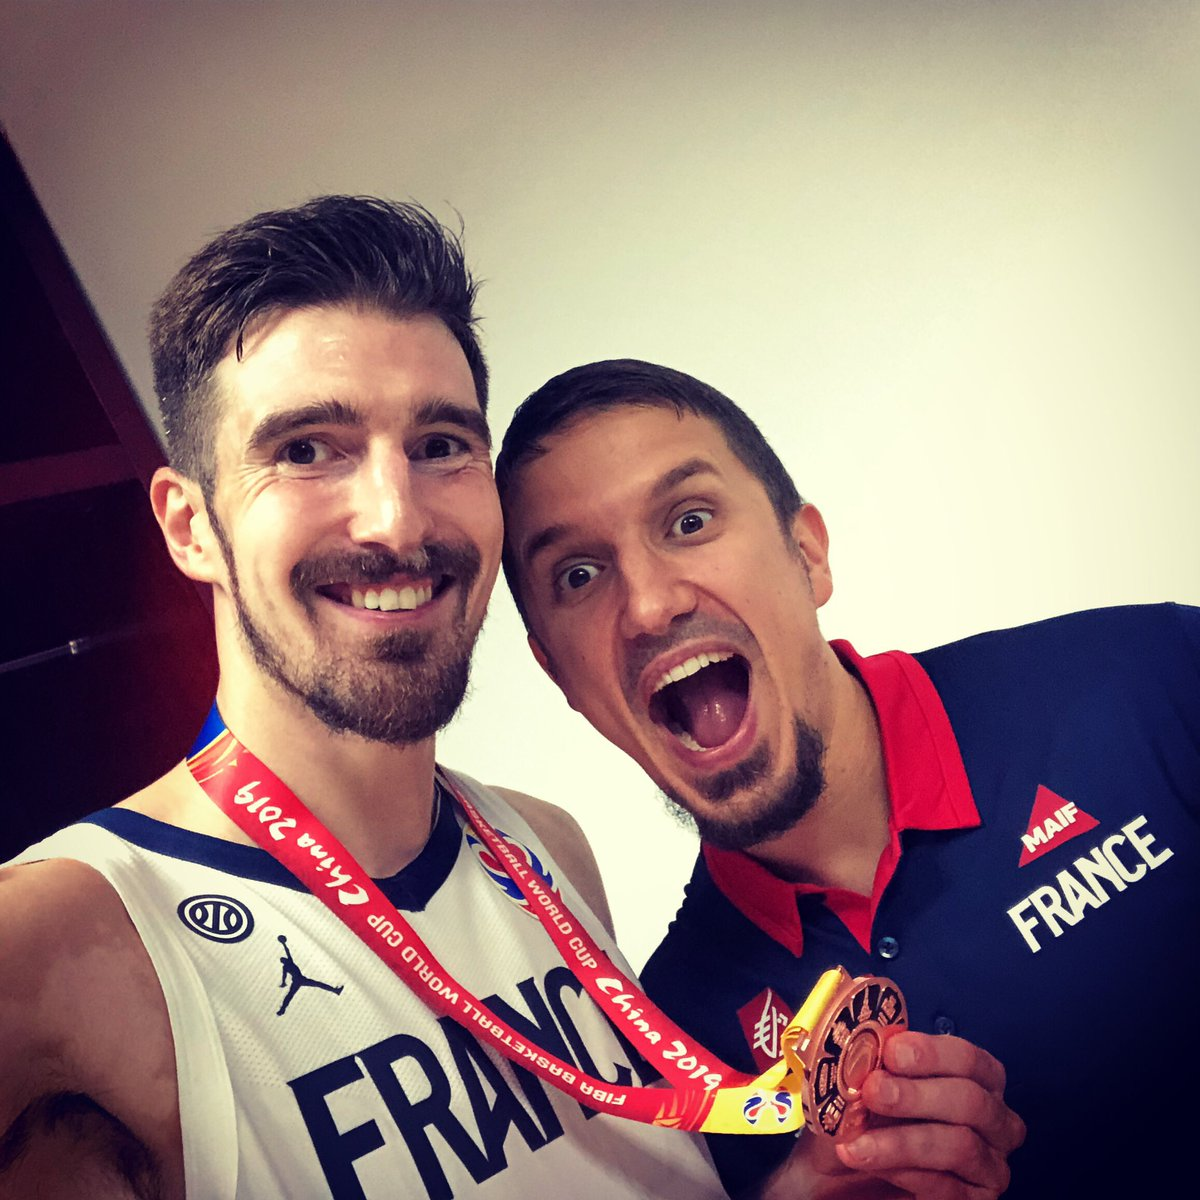 Avec mon ami Théo ! 😉🏀🇫🇷🥉 You need something, just ask him... 😜 #ThéoÀTokyo #JO2020